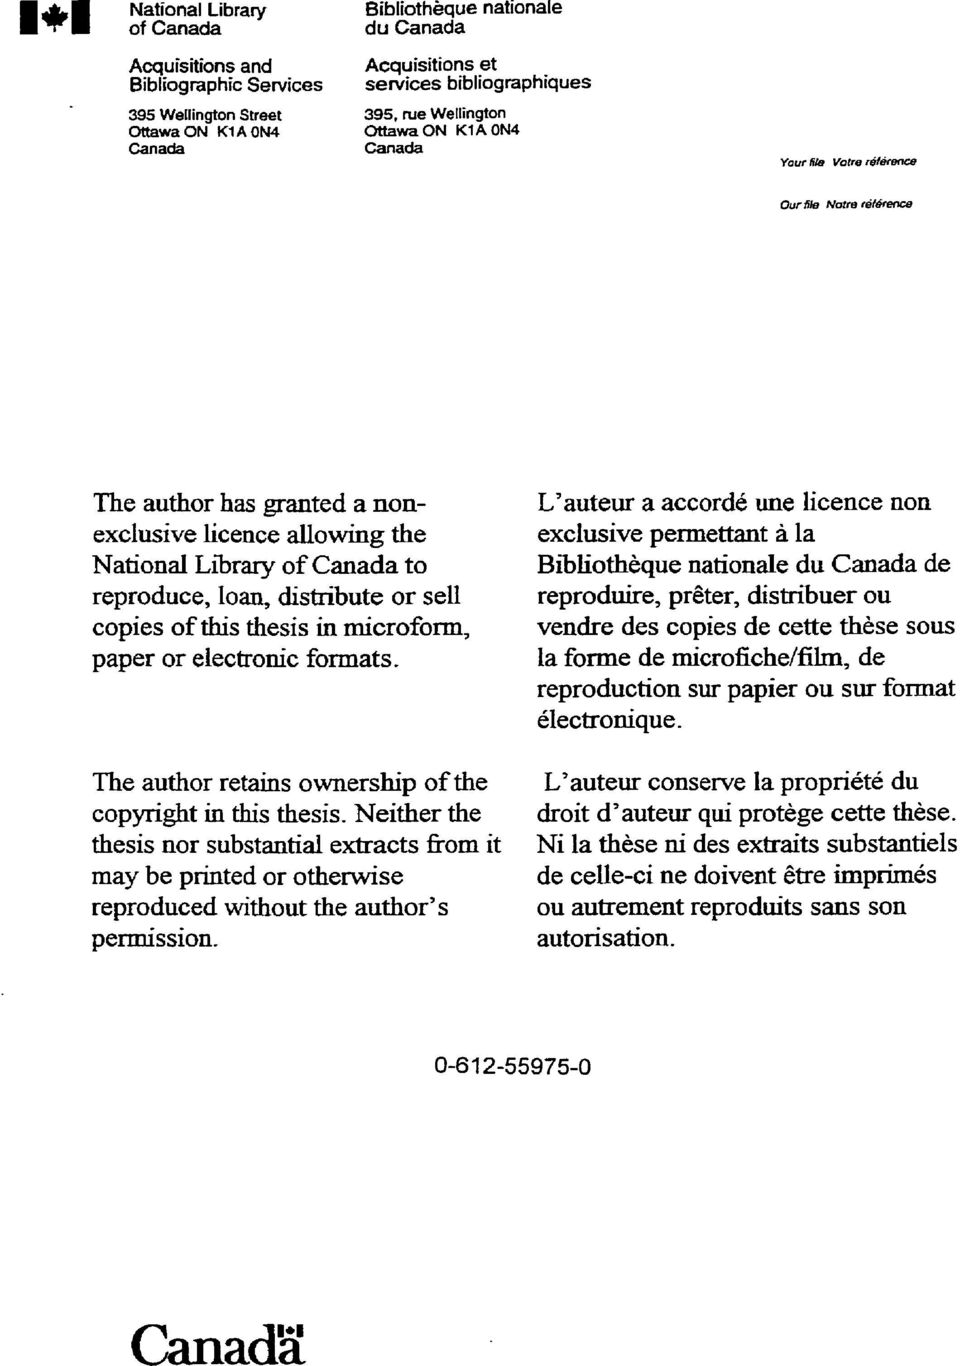 distribute or sell copies of this thesis in microform, paper or electronic formats. The author retains ownership of the copyright in this thesis.